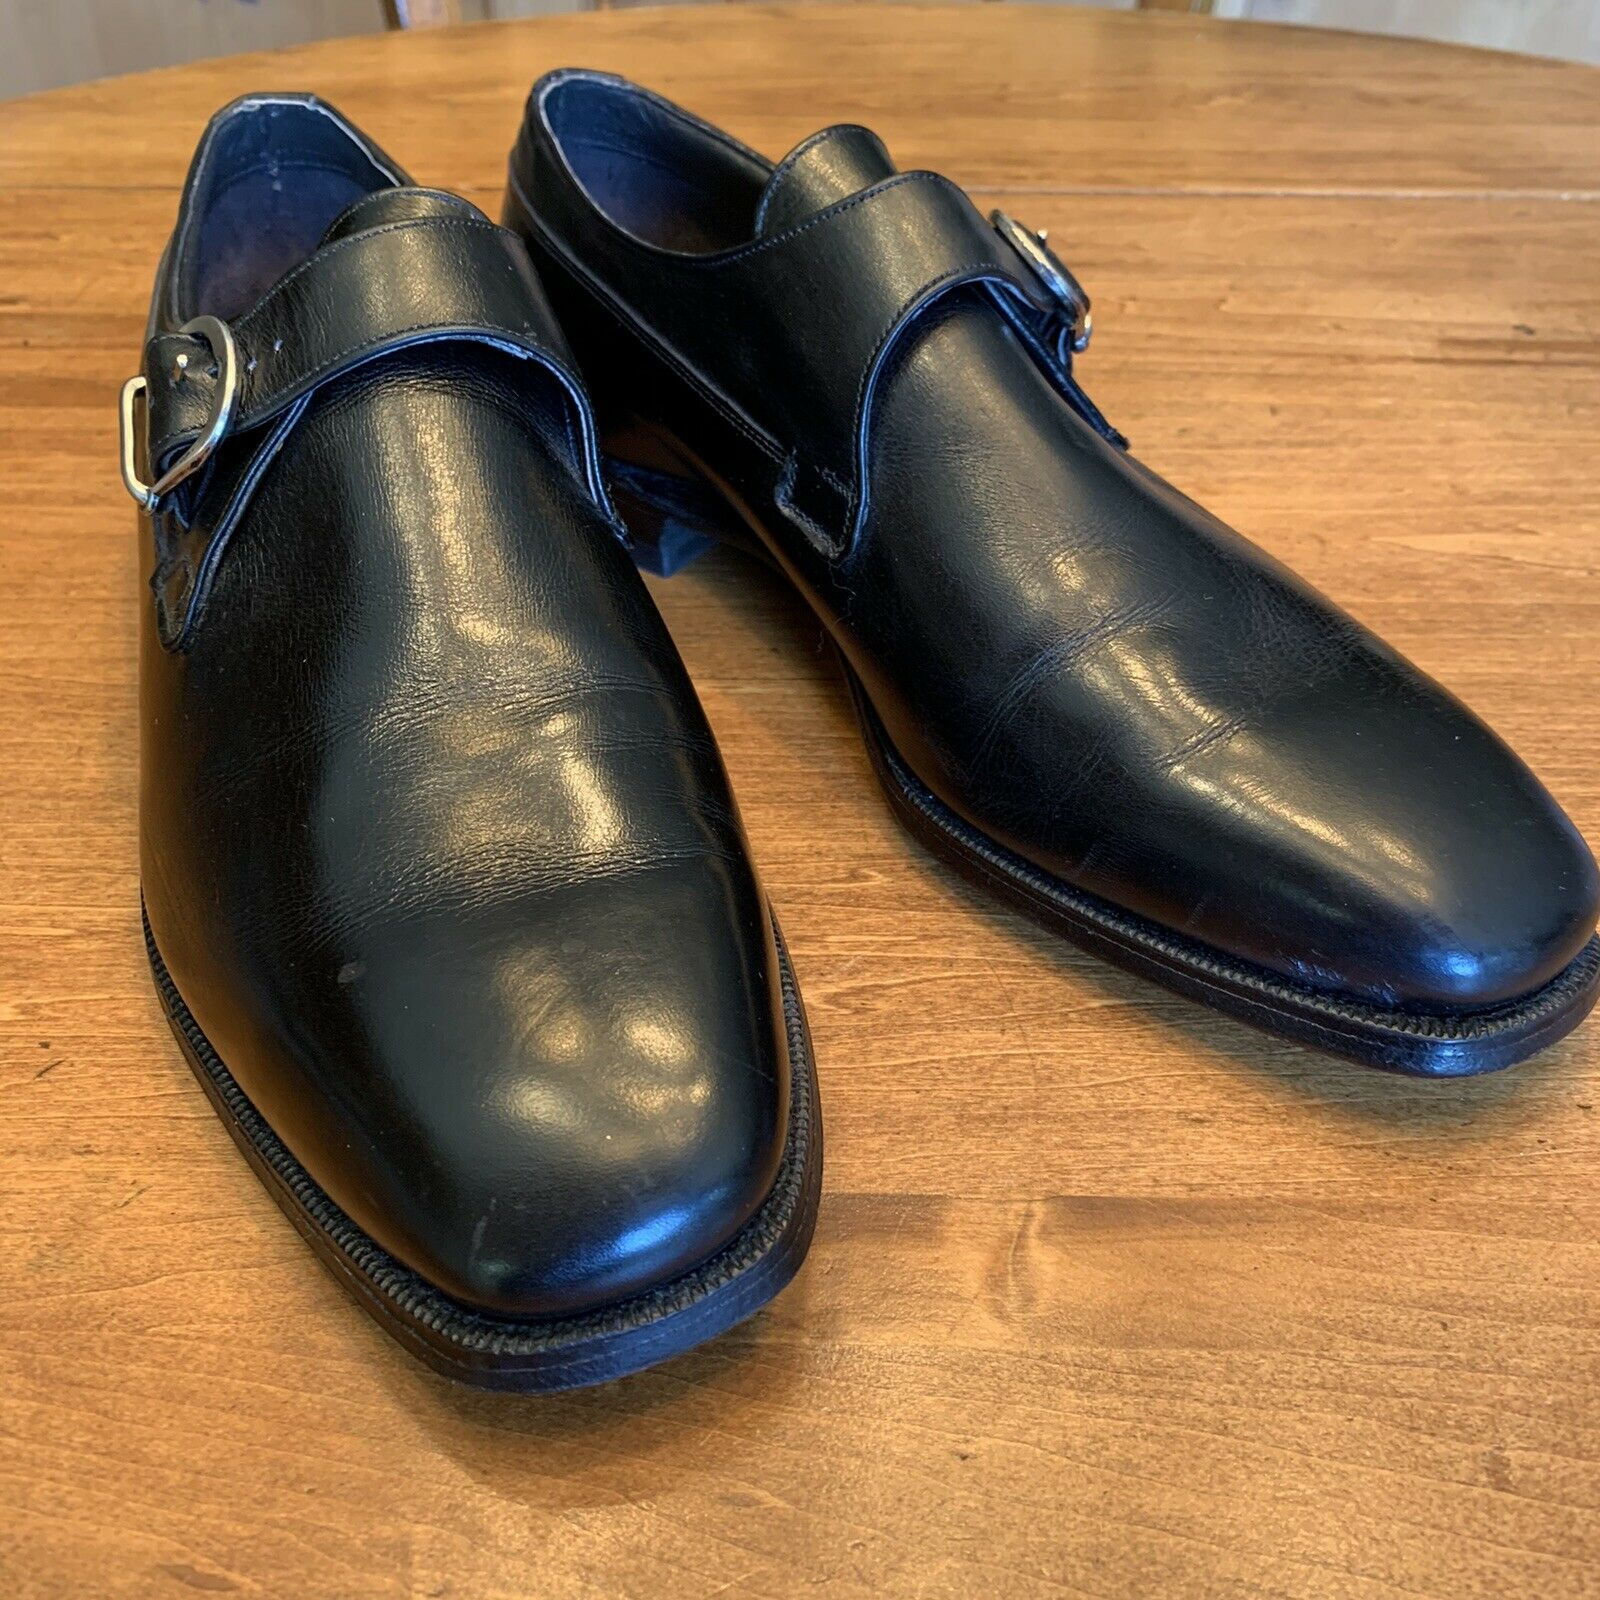 Mens New Johnston And Murphy Monk Strap Loafers In Black Size 9 1/2 D B